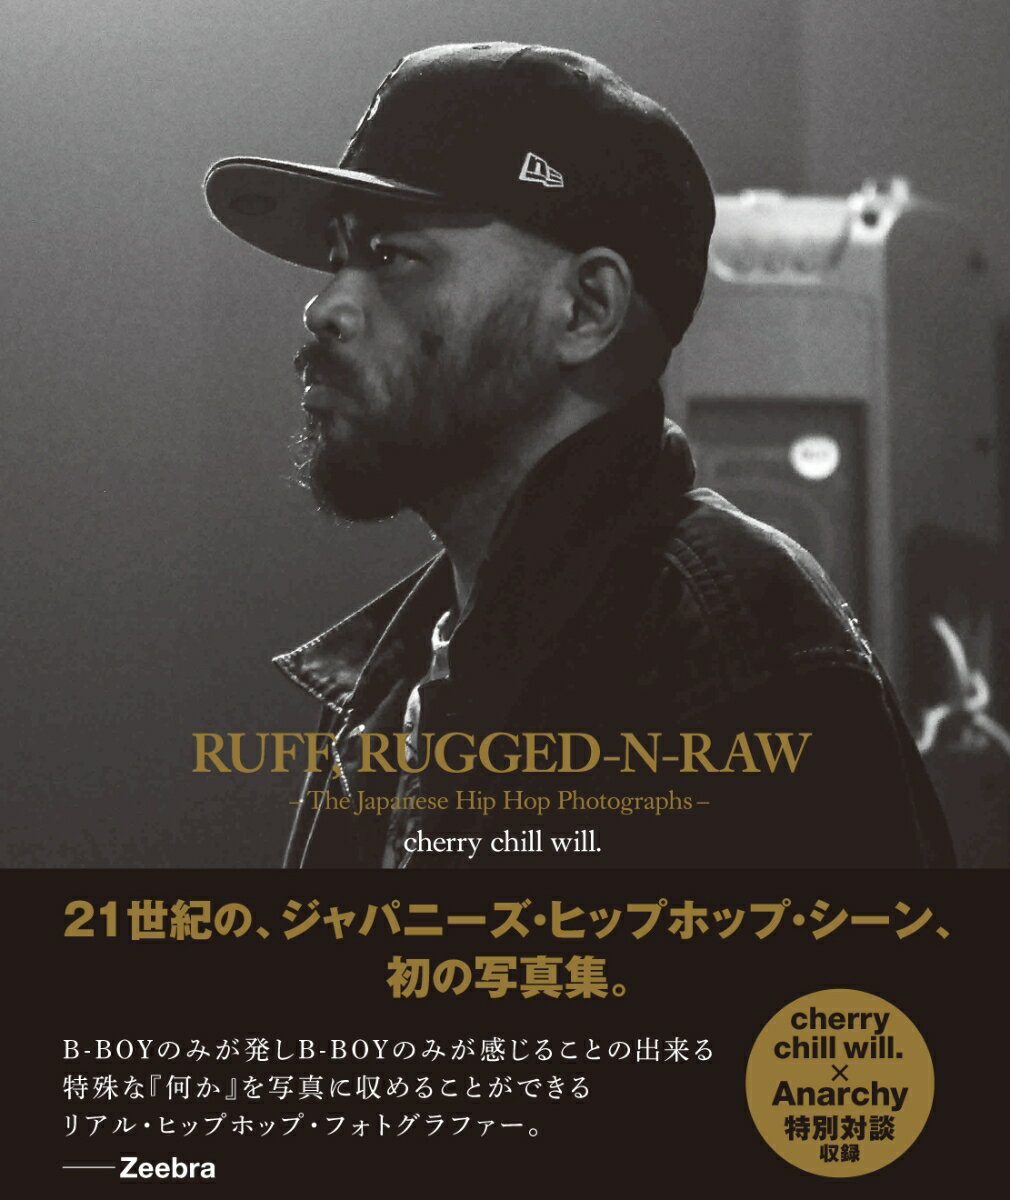 RUFF、 RUGGED-N-RAW-The Japanese Hip Hop Photographs-